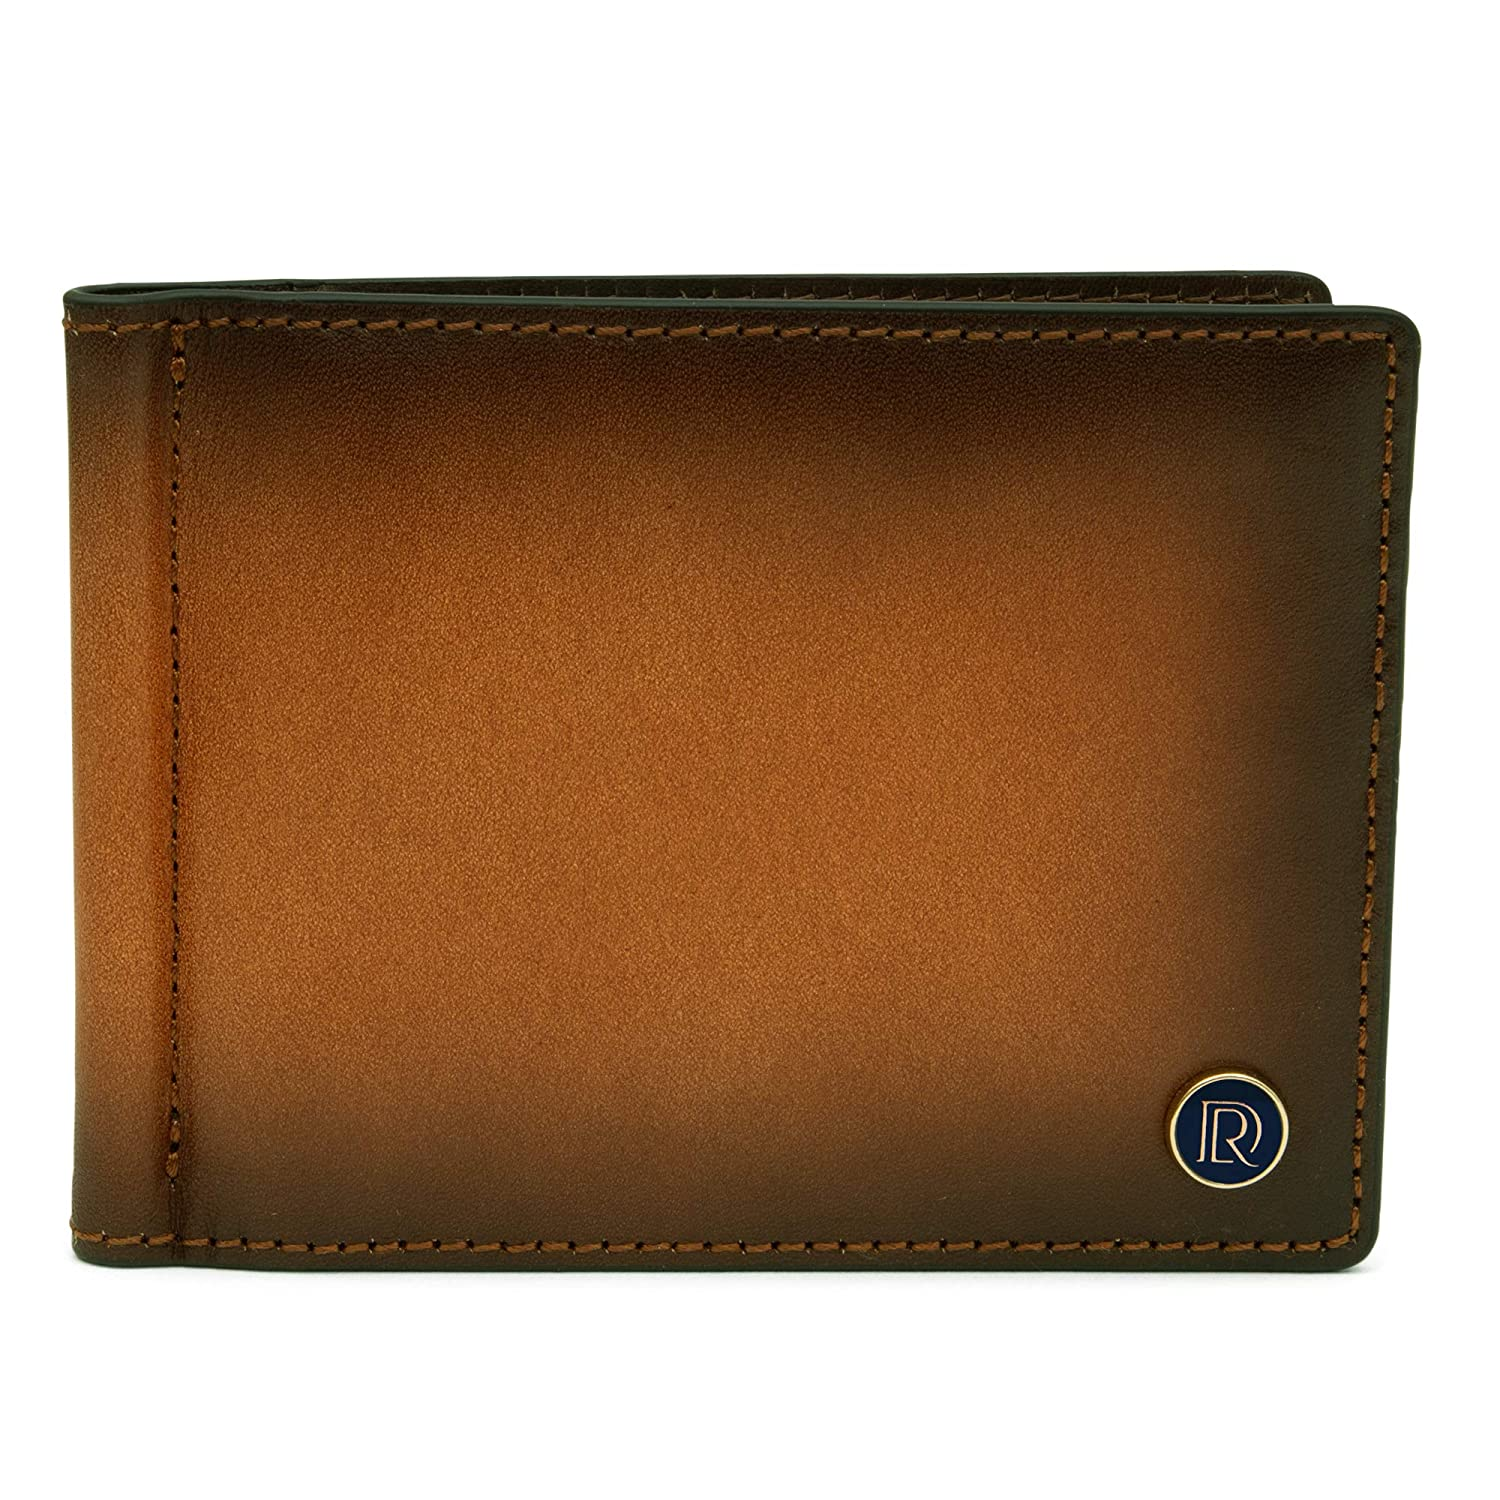 Sleek Mens Bifold Wallet Classic Style Bifolds Brown Cognac with Money Clip Stylish Slim Front Pocket Wallet for Men with Card and Cash Holder Full Grain Leather